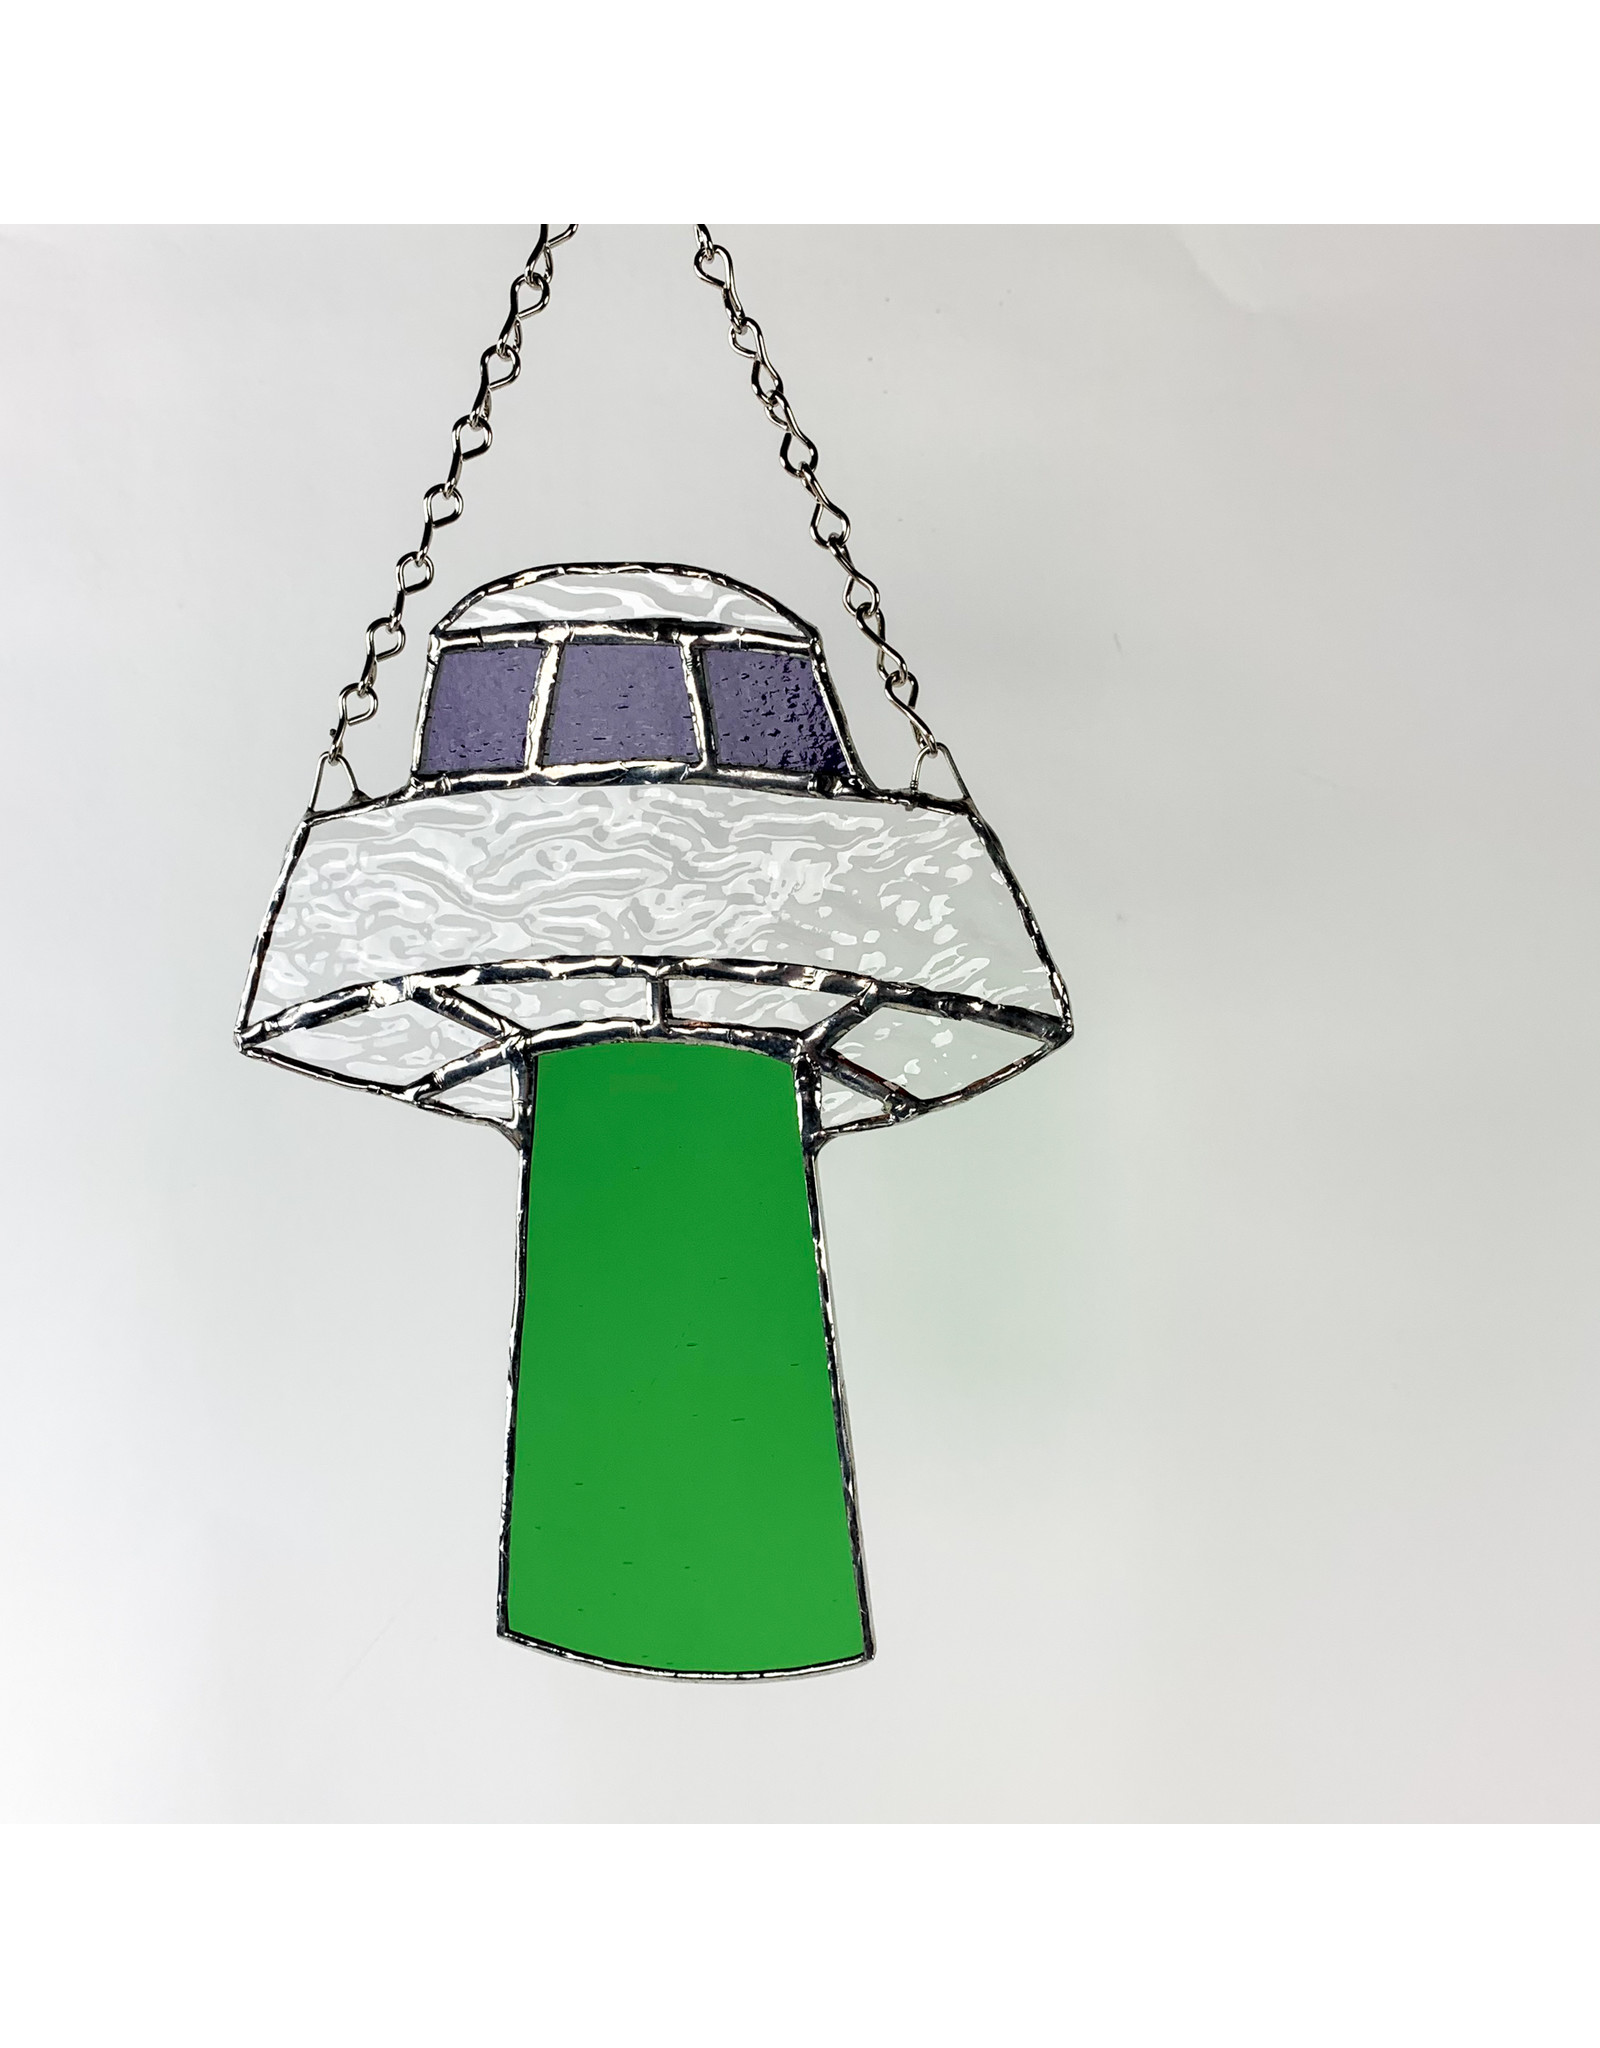 Reverberation Stained Glass - Consignment Large UFO - Consignment